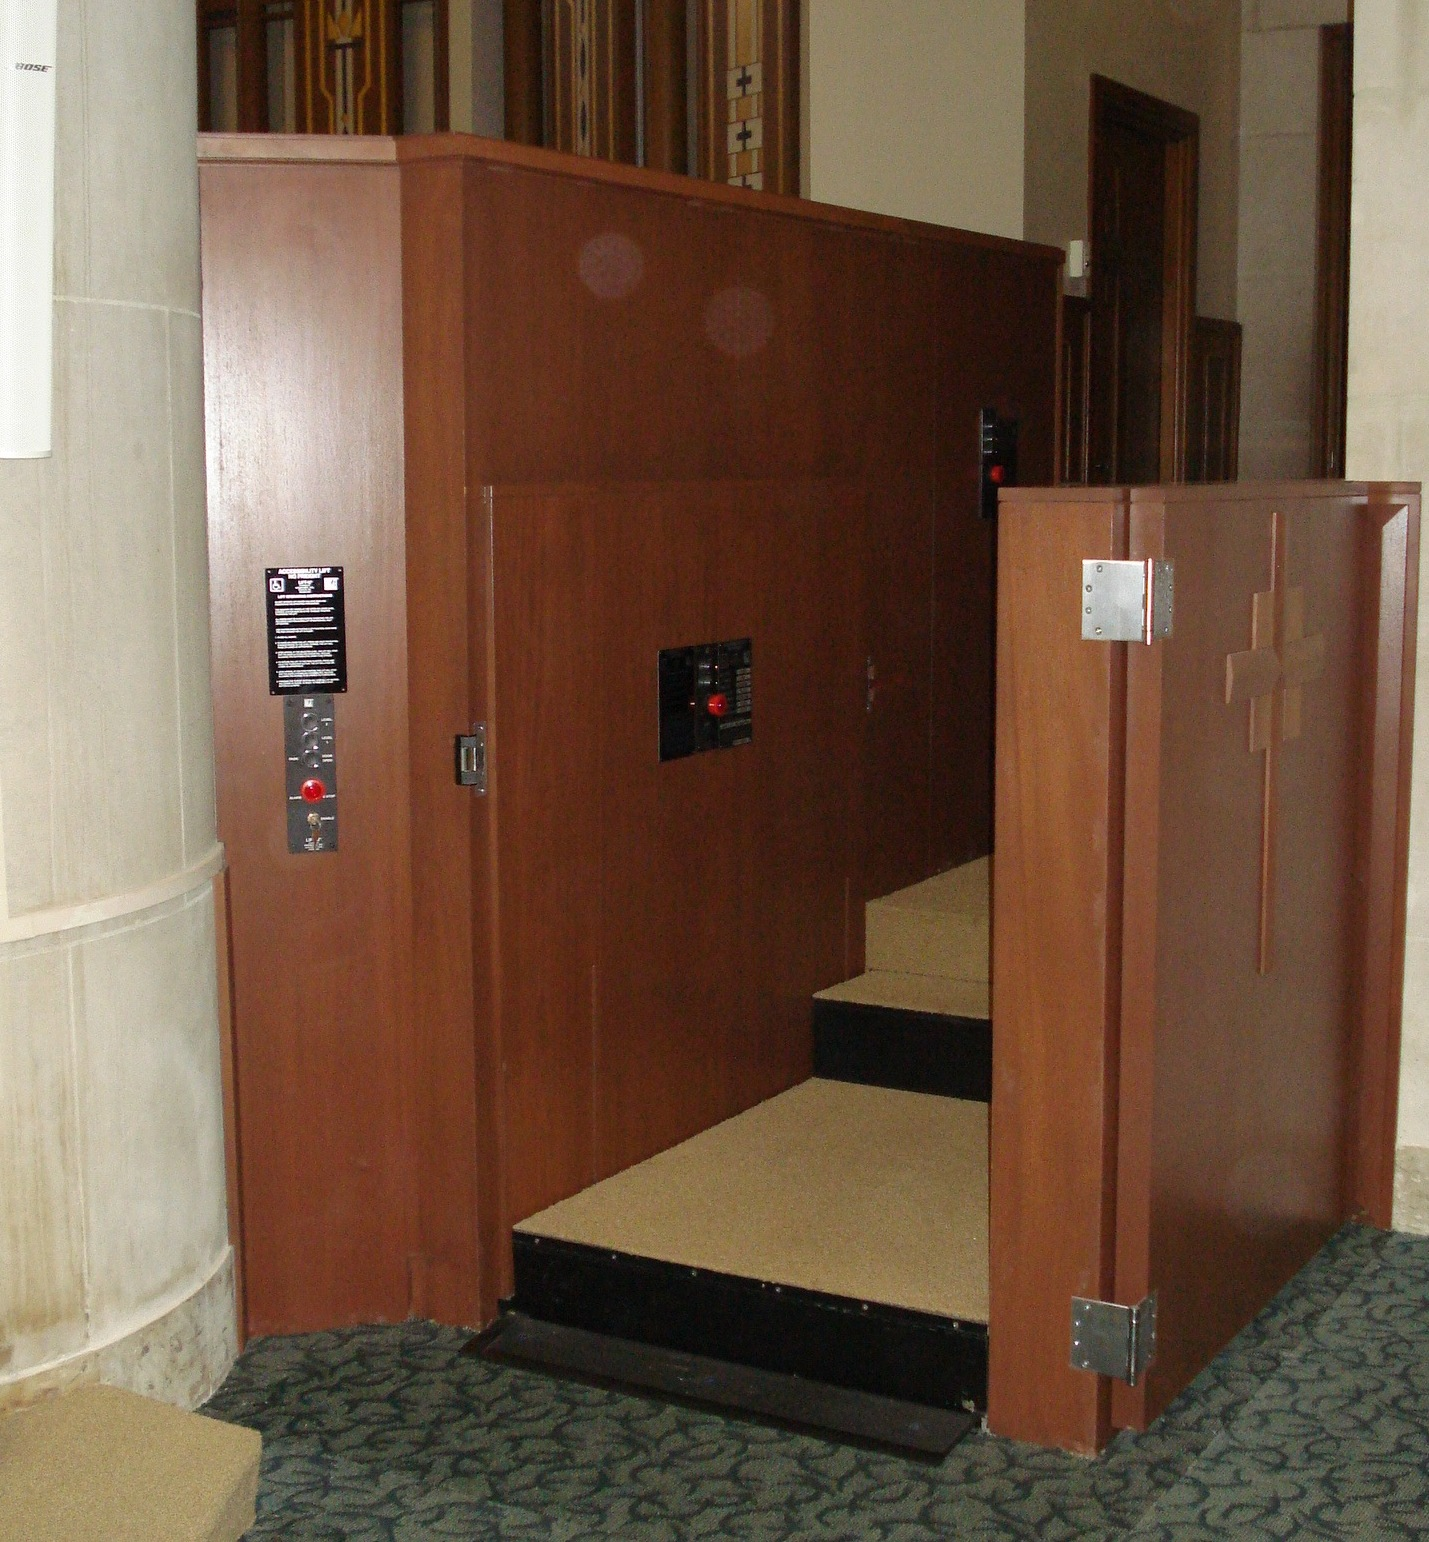 Both doors are opened. Lift in church utilizes retractable step to allow ambulatory access to and from the chancel. Lift encased in wood millwork blending in with surrounding aesthetics. Lift function readily available, independently operable.